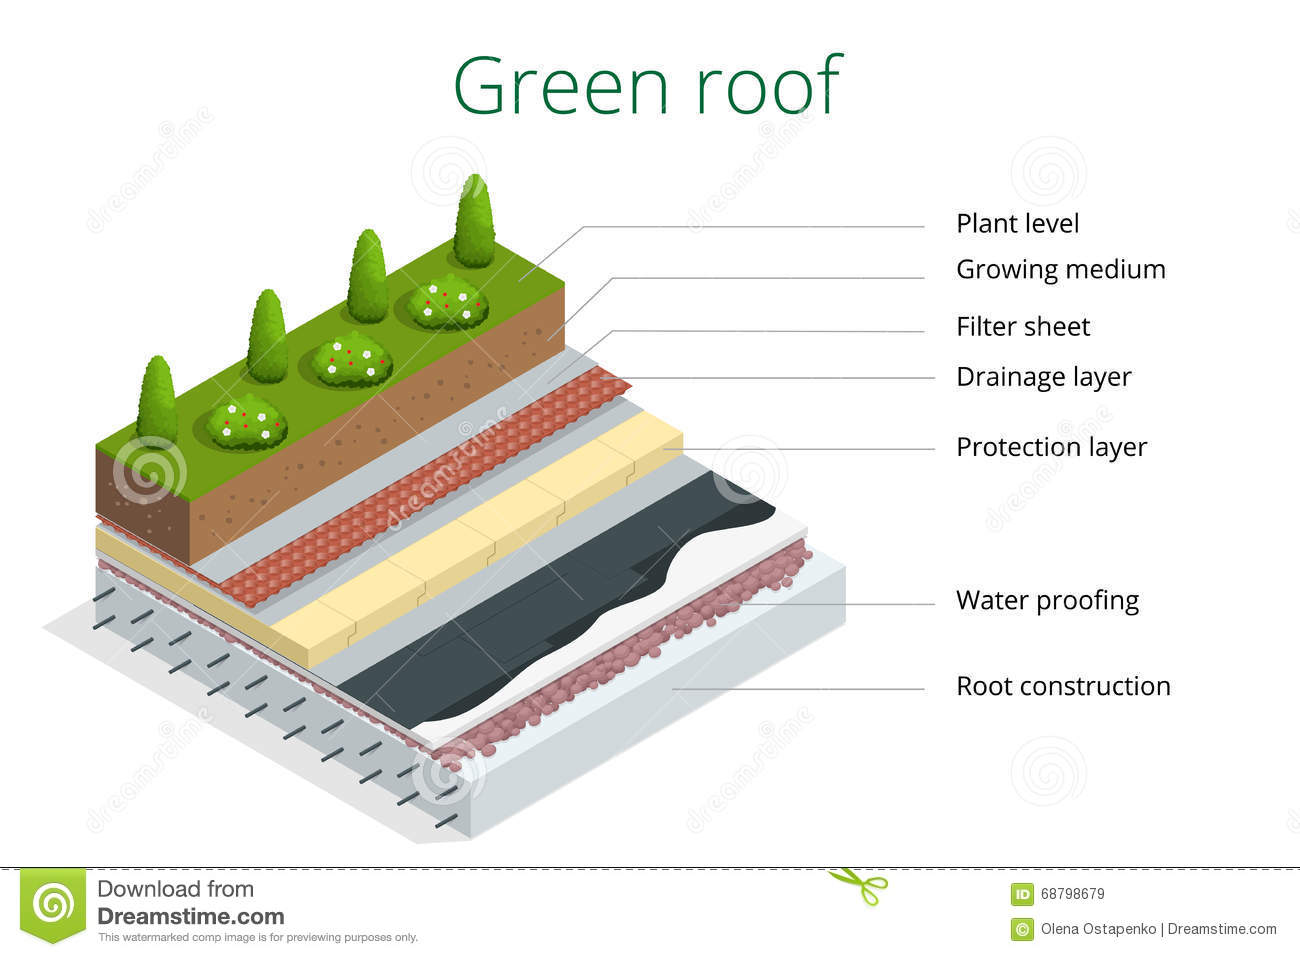 Basic Elements Of A Green Roof Flat 3d Vector Isometric Illustration Of Eco Roof Stock Vector Illustration Of Ecosystem Nature 68798679